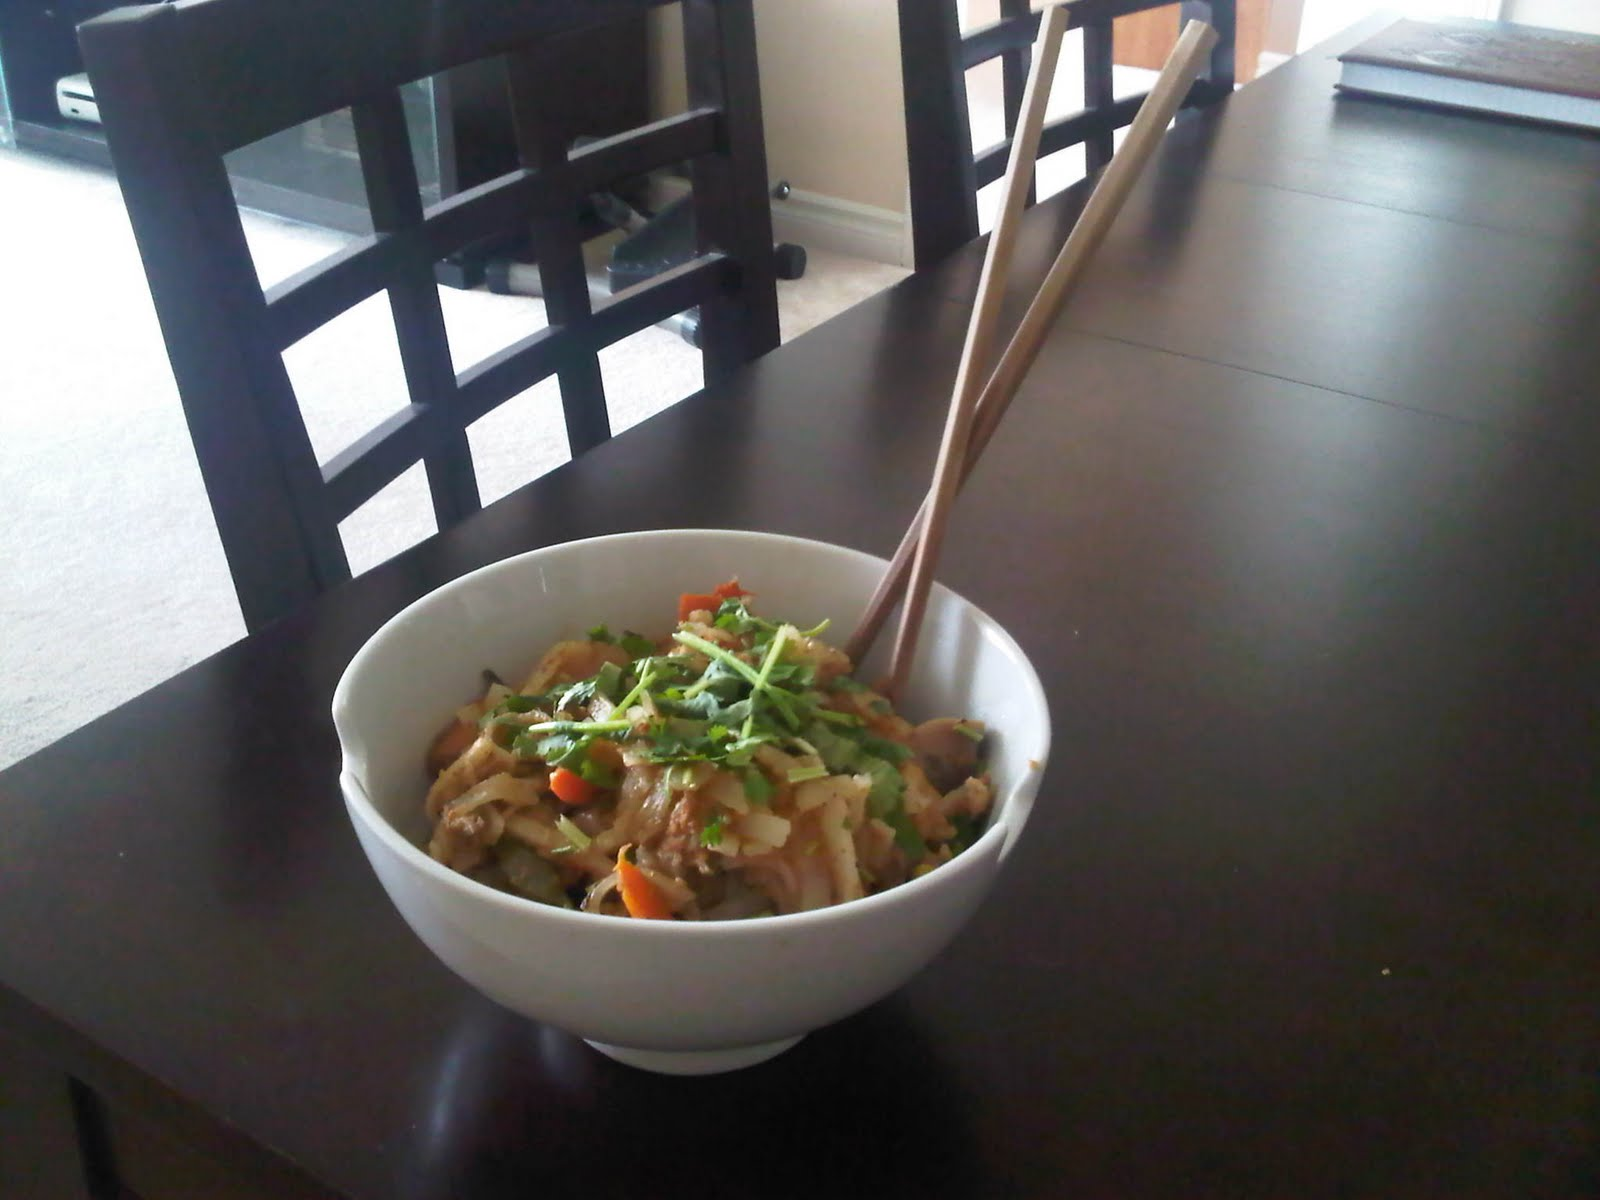 Lime wine islamic noodles you will not find this recipe online i investigated checked out links for panang curry muslim style thai food and they all provided hints forumfinder Choice Image